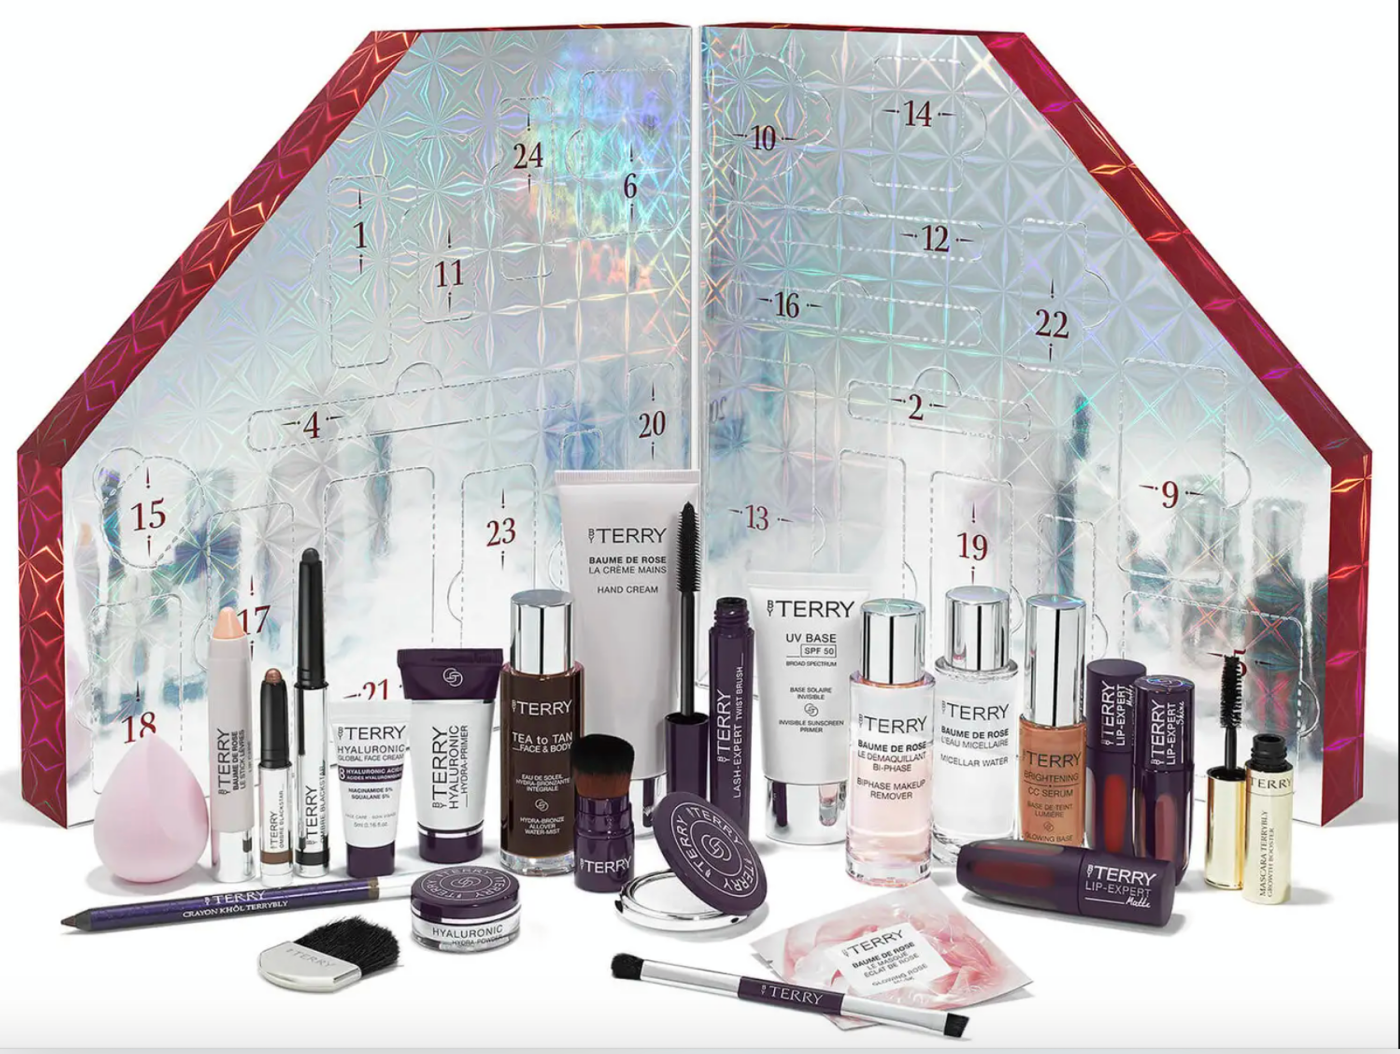 By Terry Advent Calendar Contents 2021